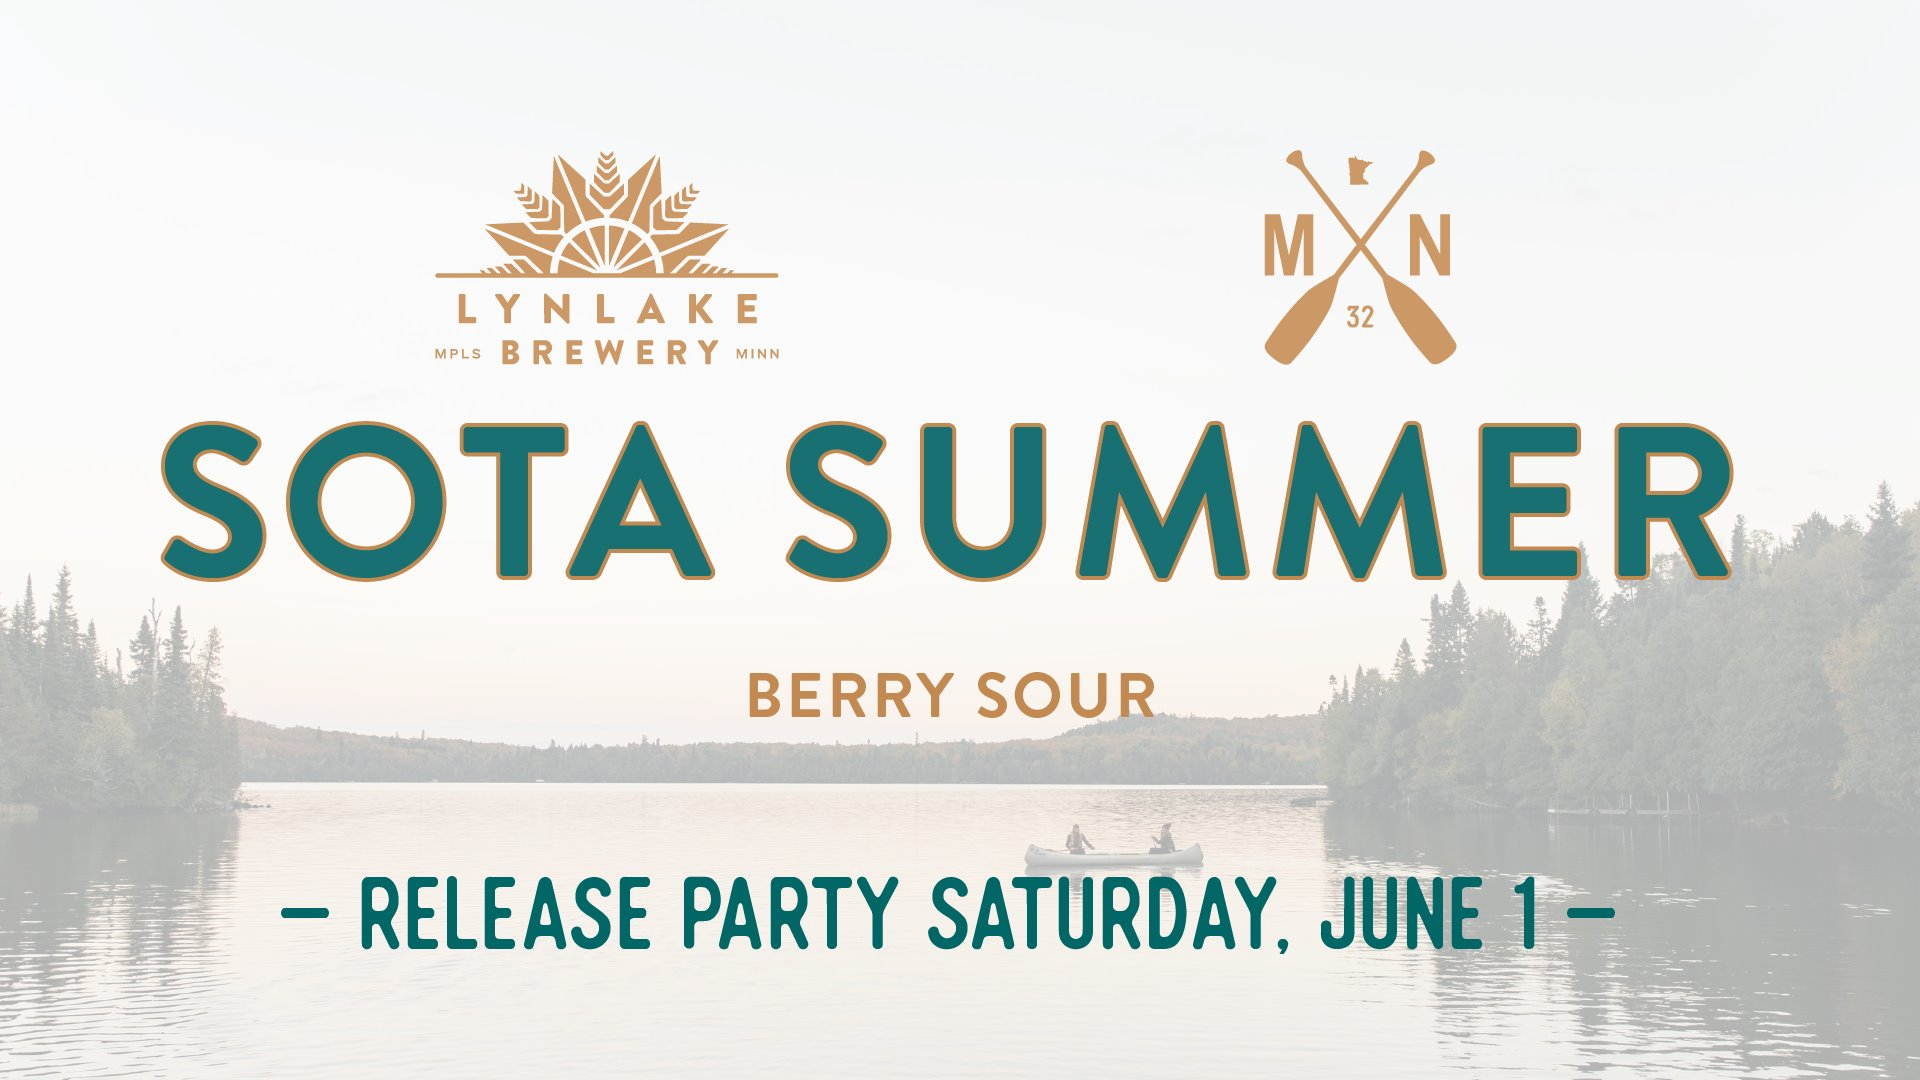 Sota Summer Release Party